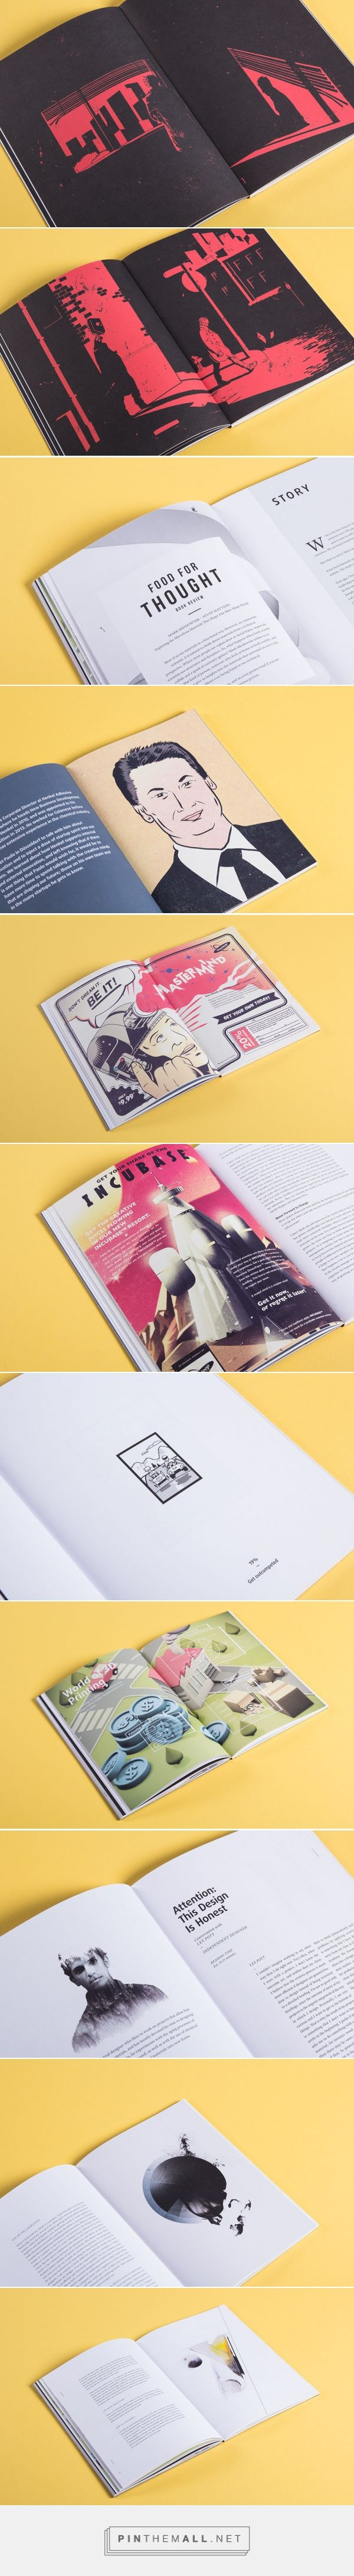 Now ltd edition book startups on behance created also best zine images pinterest editorial design graph rh